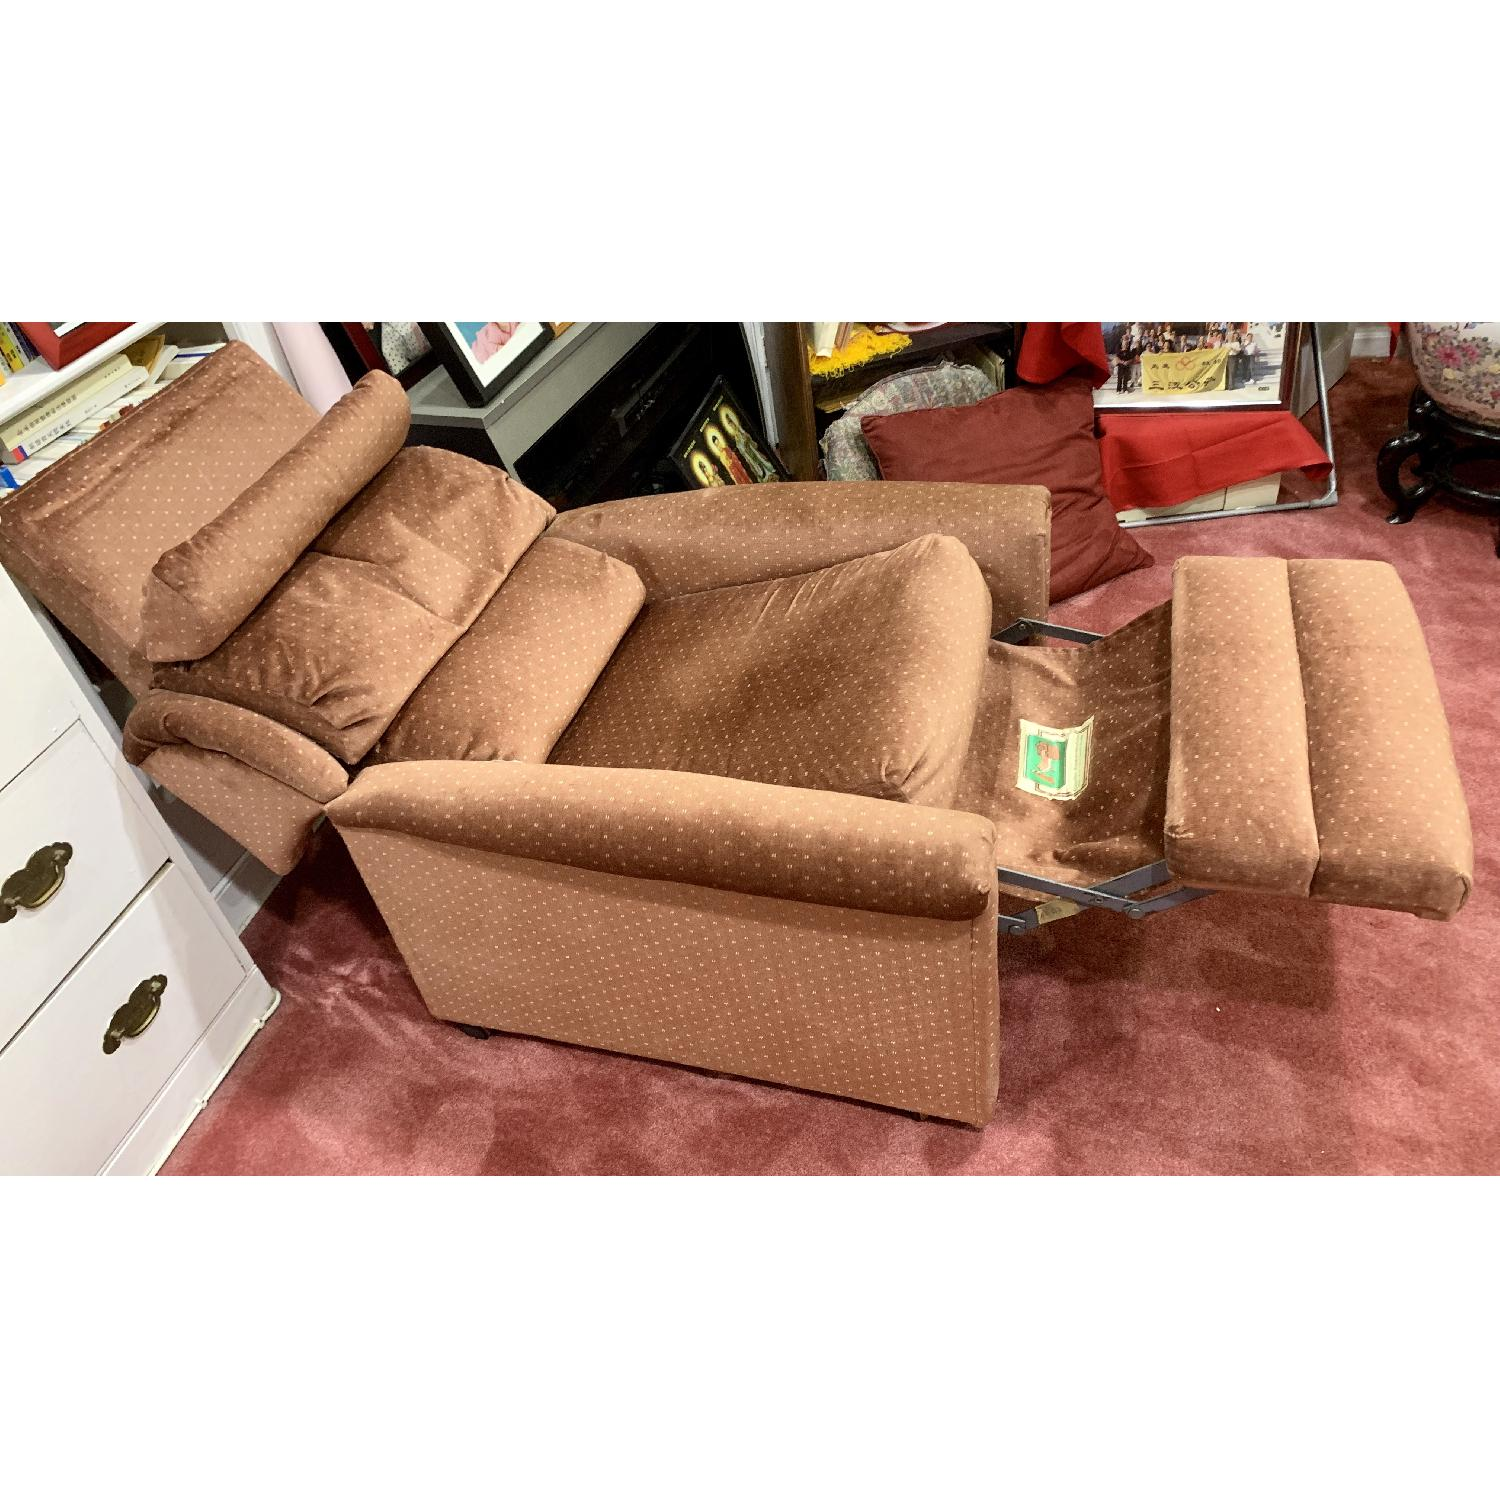 Castro Convertibles Reading/Recliner Chair - image-2